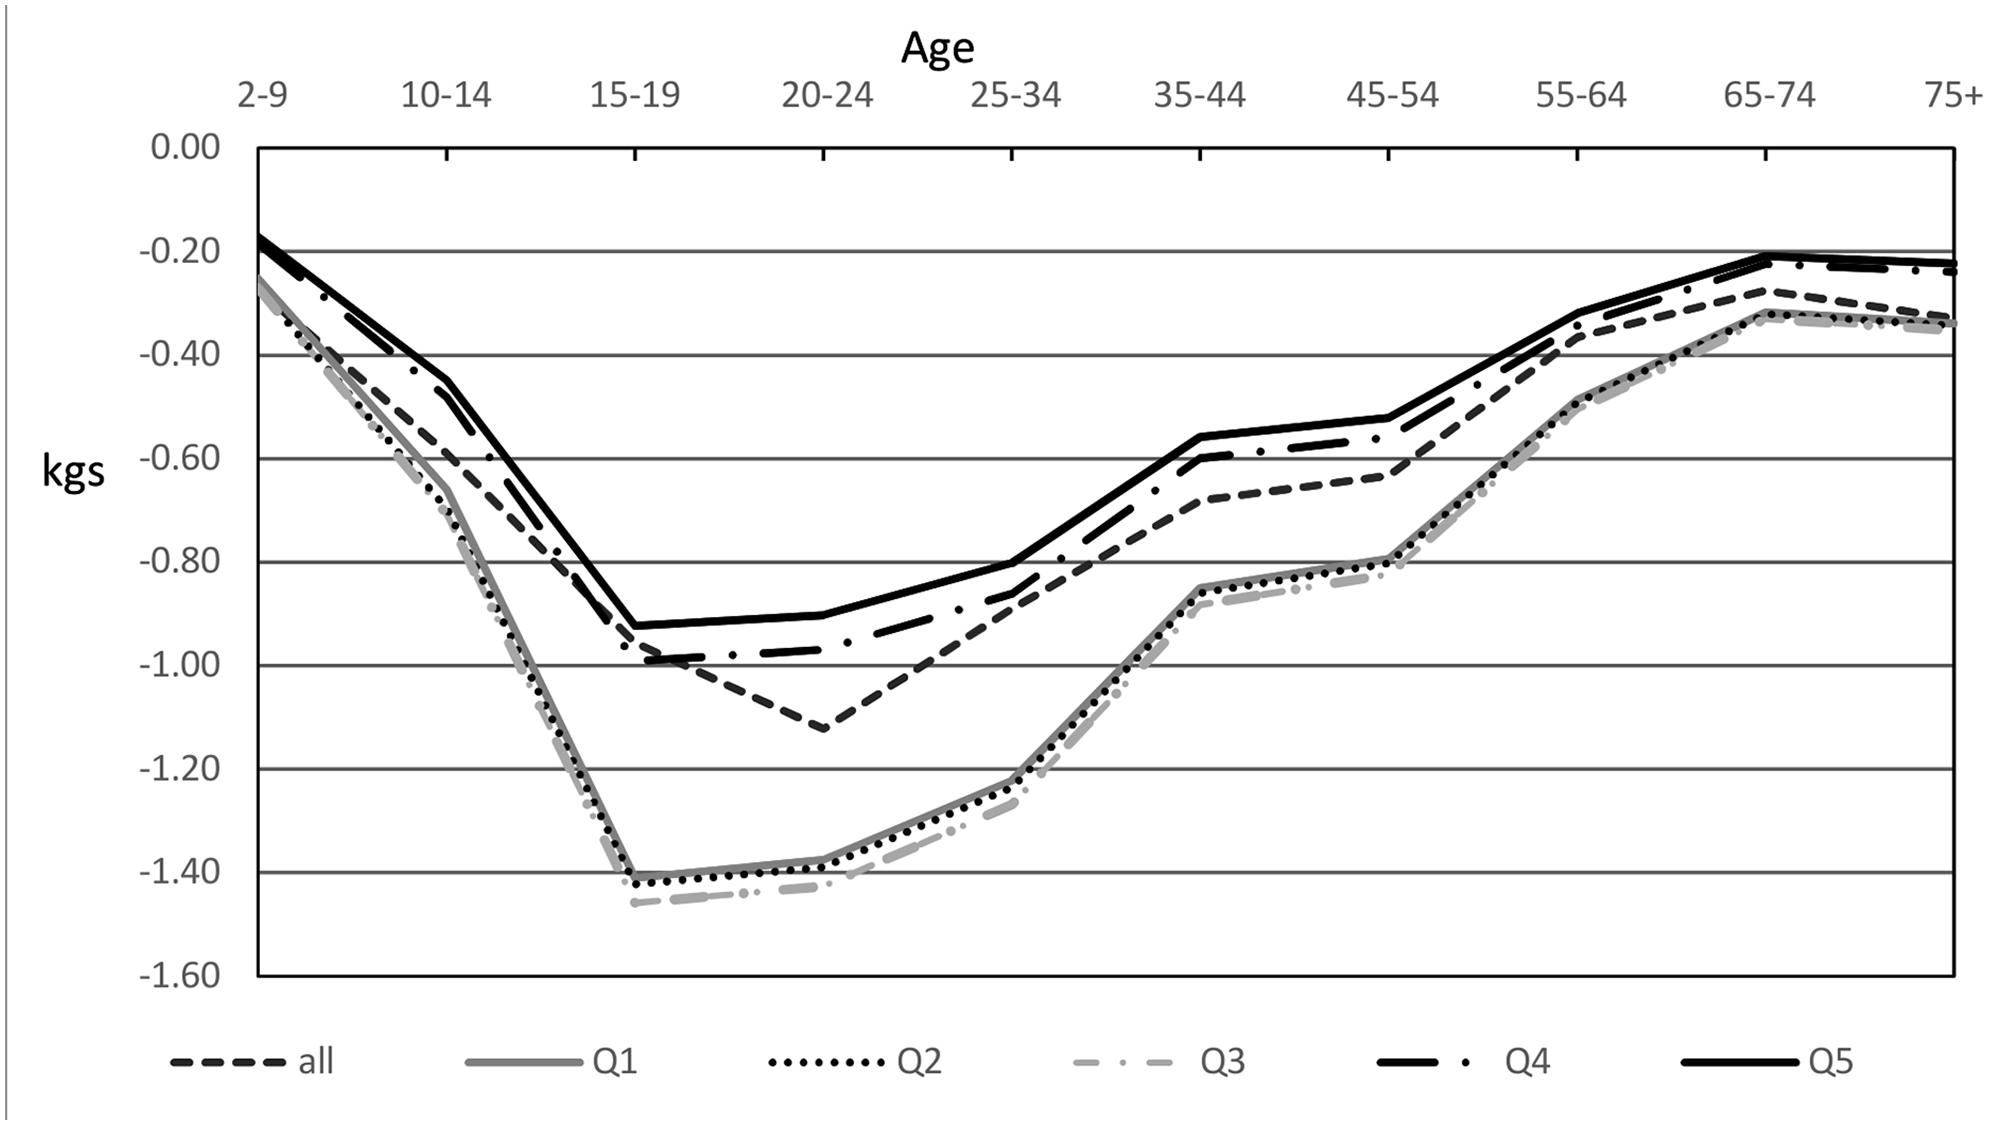 Modelled mean weight decreases in men after introduction of a 20% sugar-sweetened beverage tax by quintile.